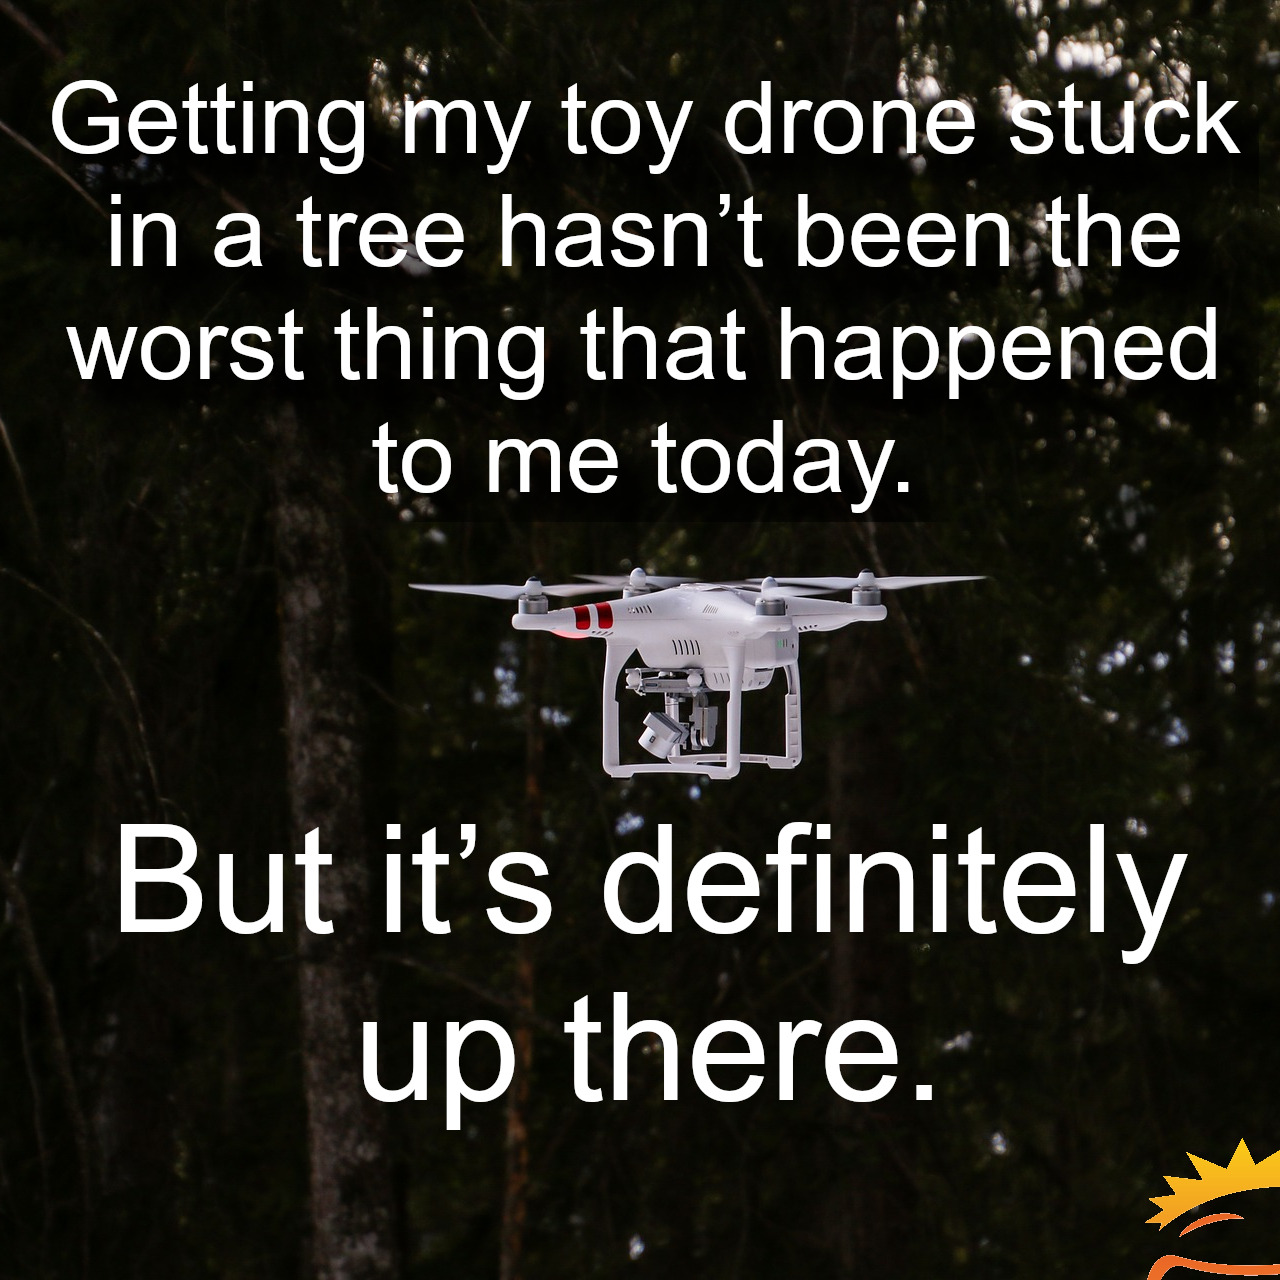 Drone stuck in a tree